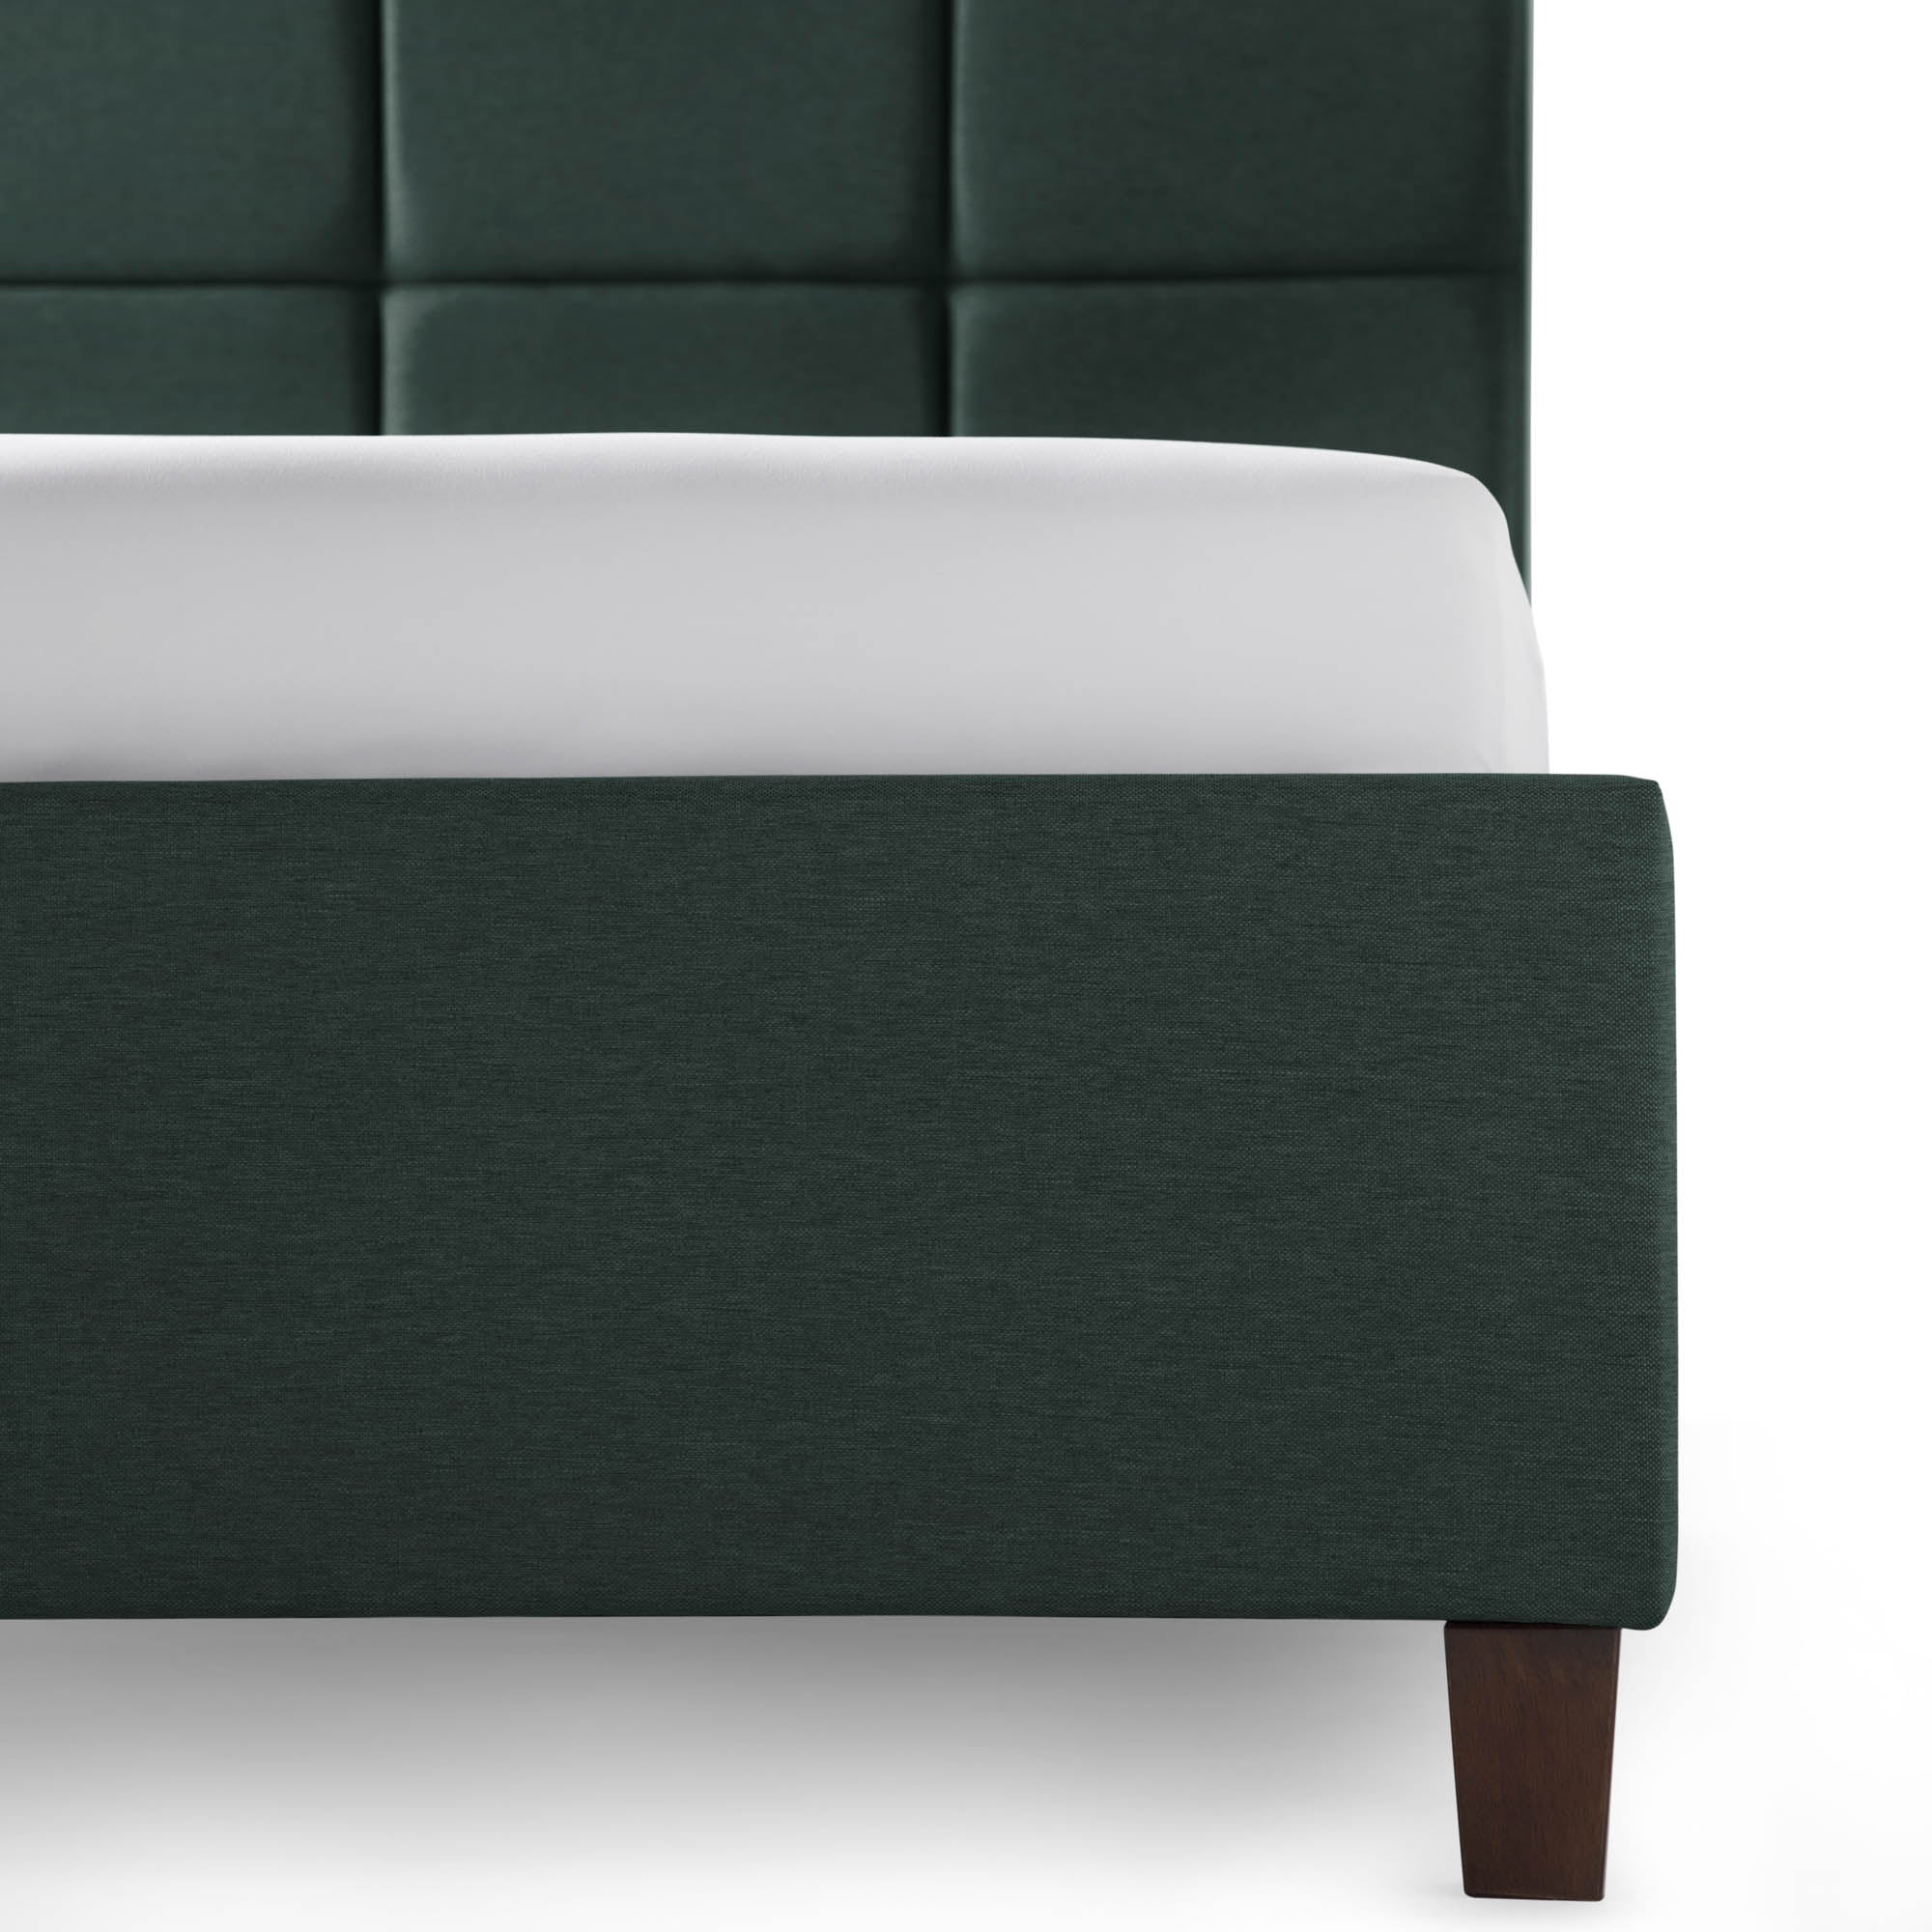 Yogasleep by Malouf Scoresby Designer Bed Spruce - Yogasleep by Malouf